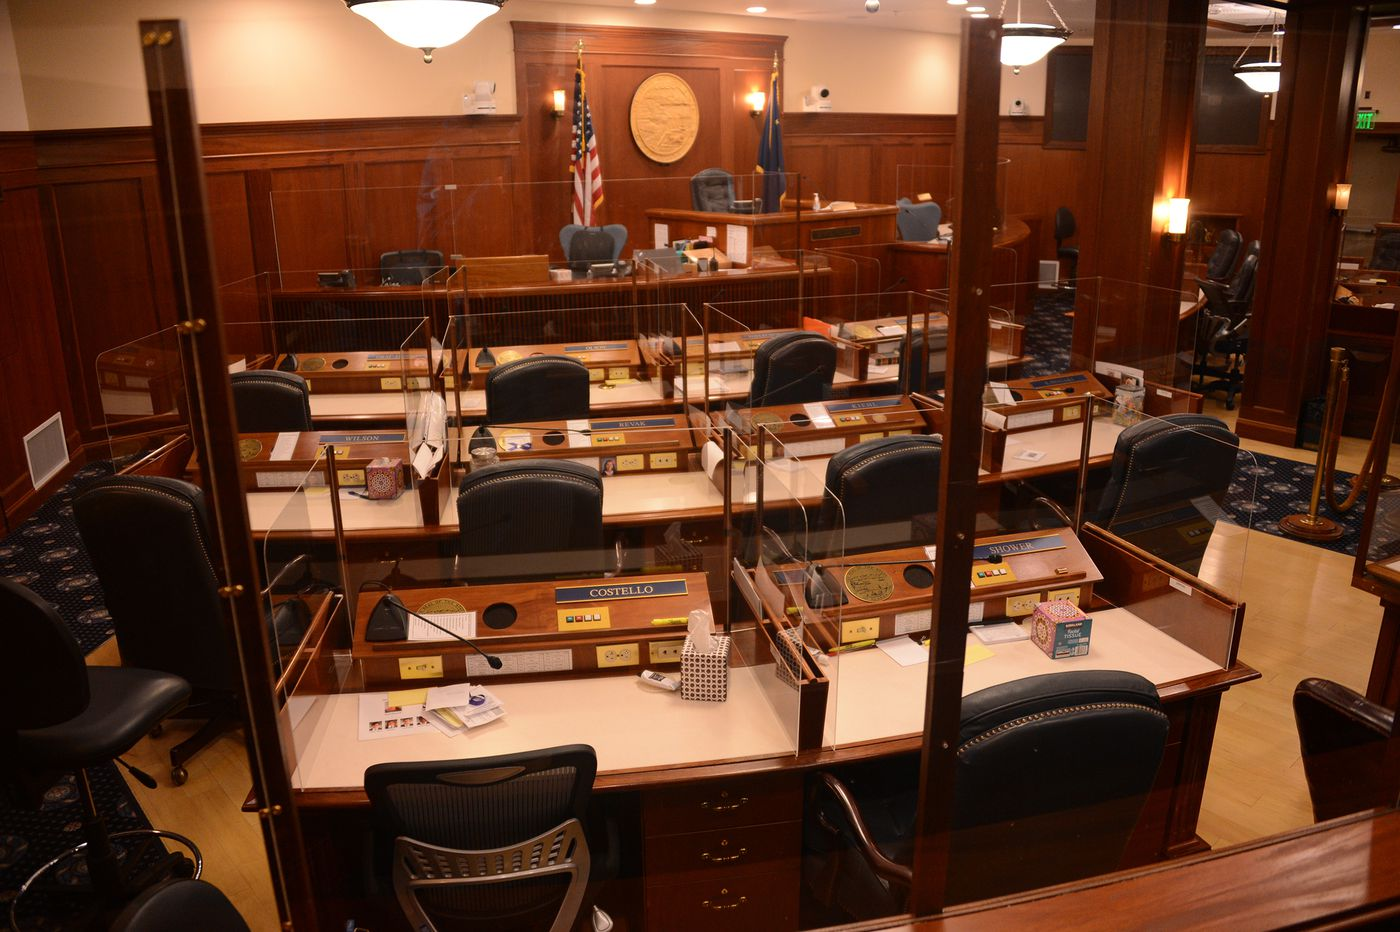 The chambers of the Alaska Senate, seen Monday, Jan. 11, 2021 have been divided with plexiglass shields intended to prevent the spread of COVID-19. (James Brooks / ADN)